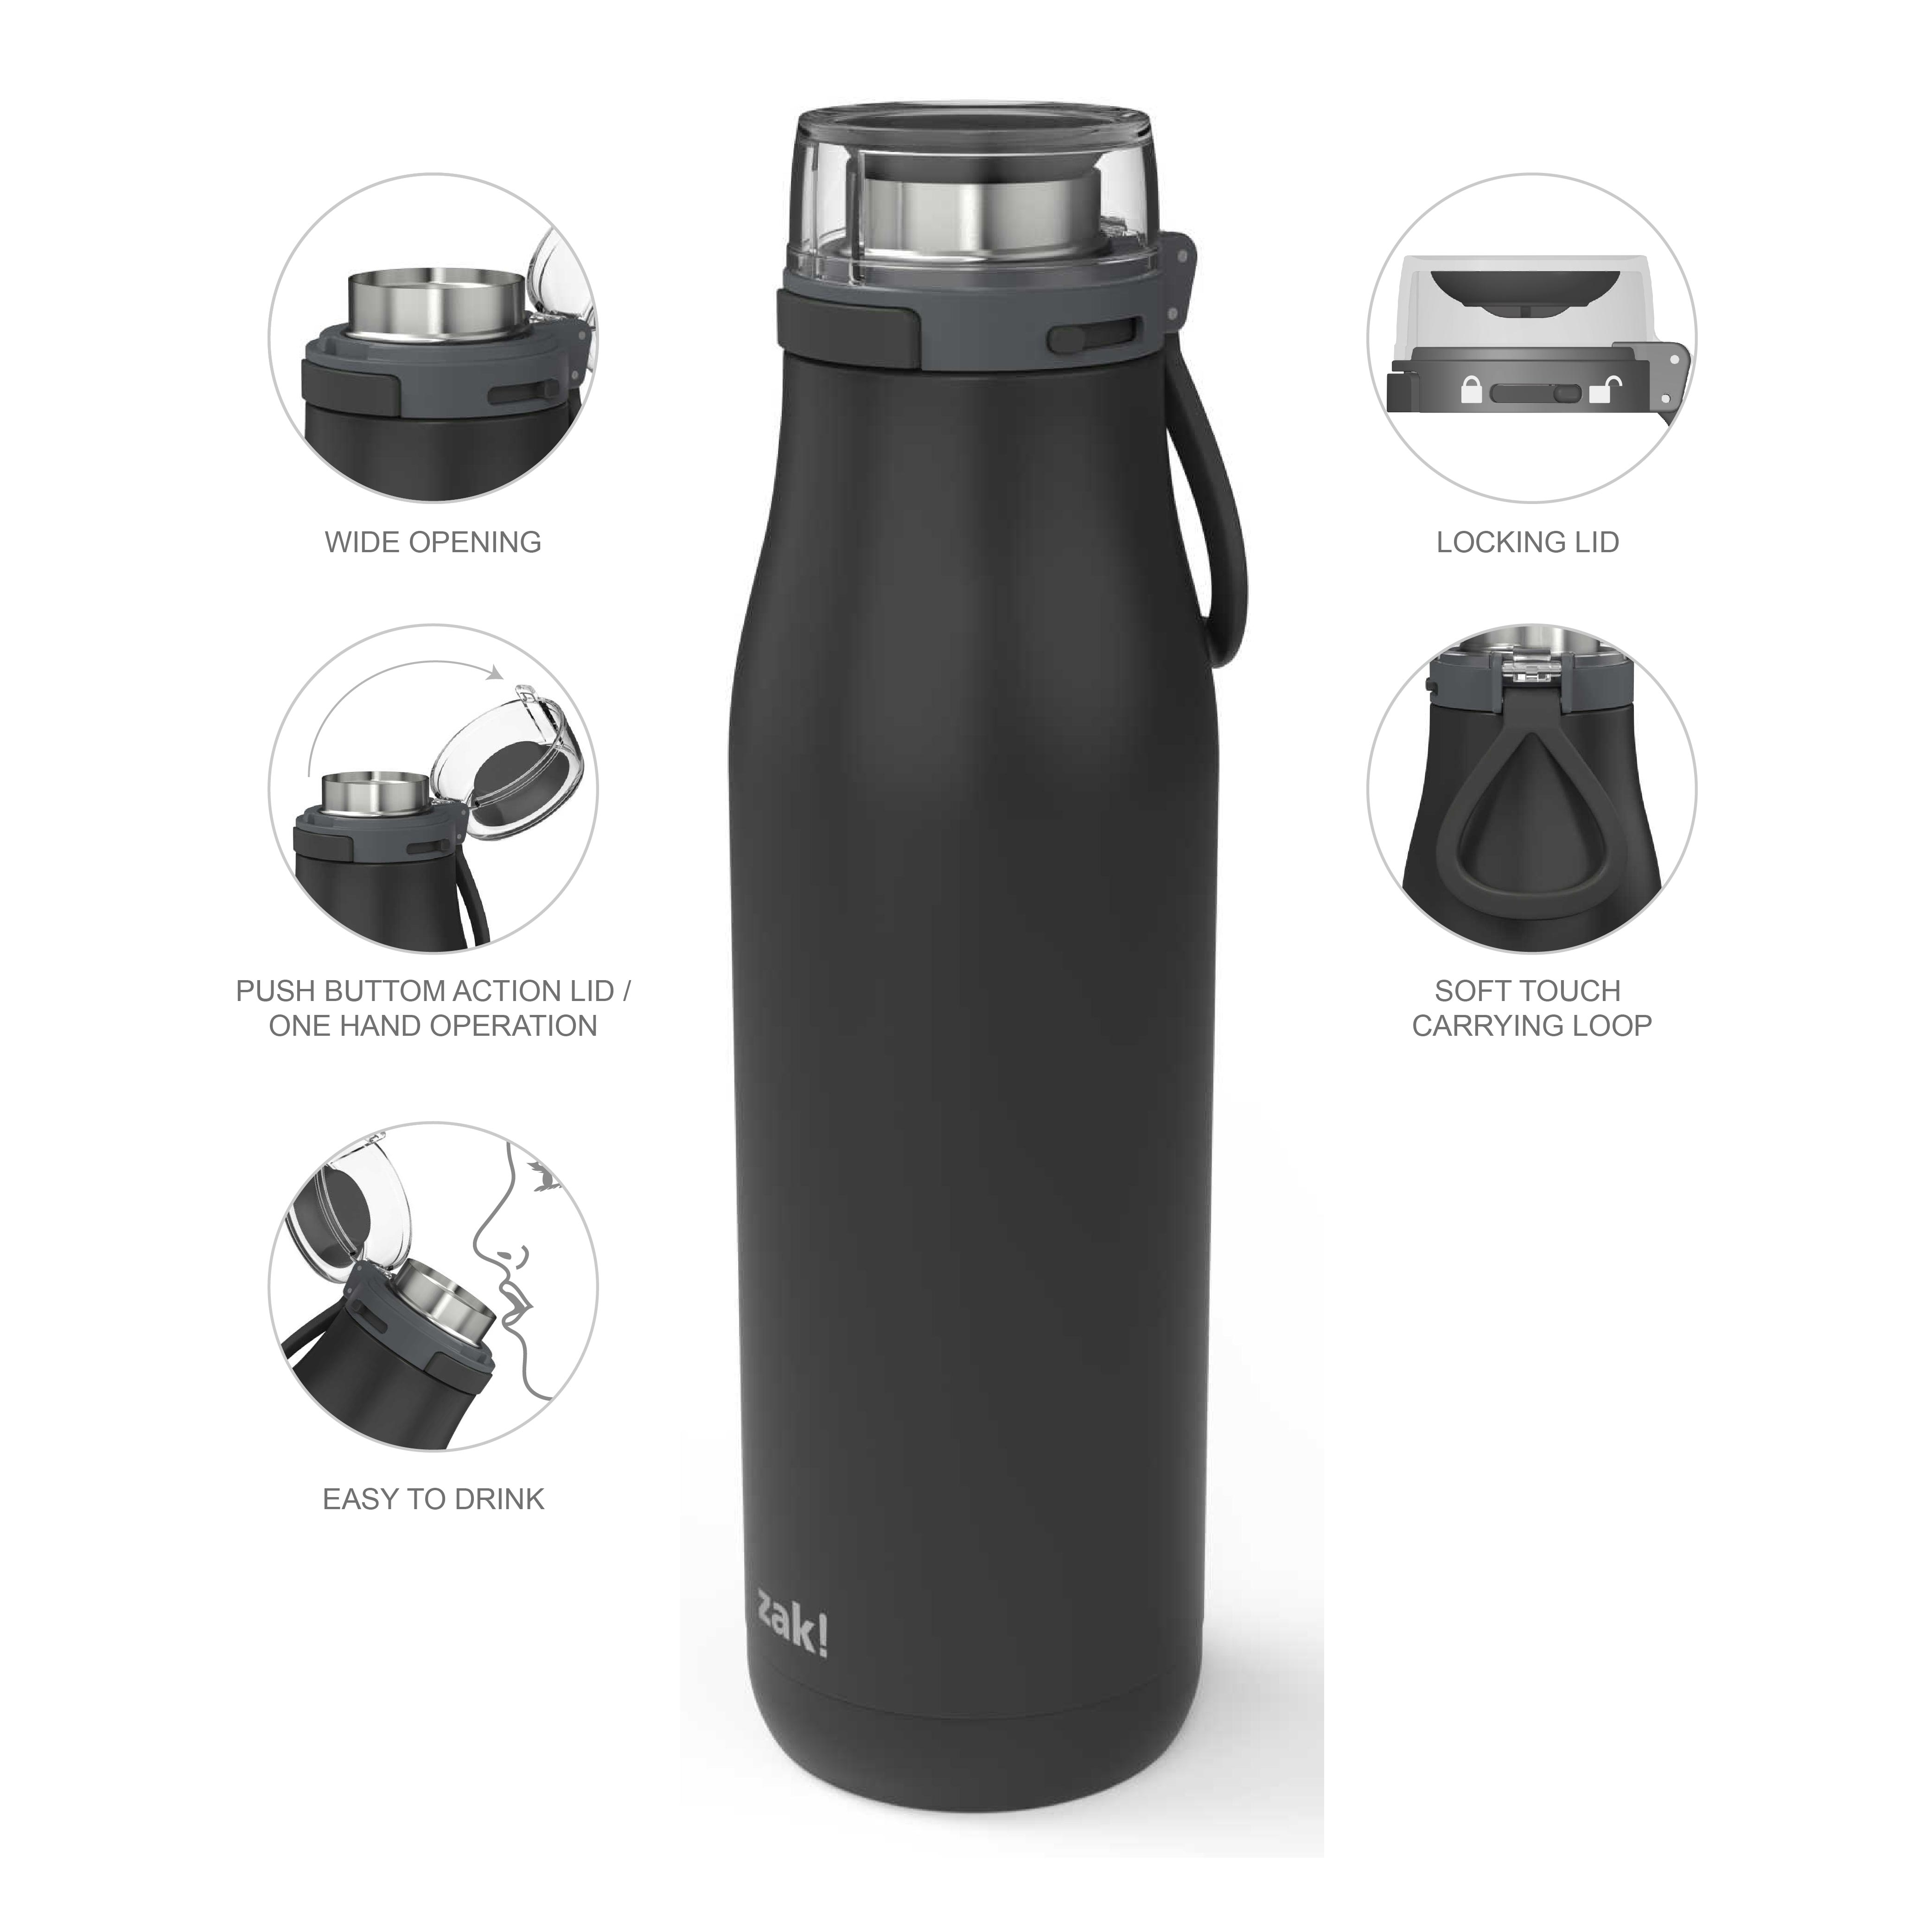 Kiona 29 ounce Vacuum Insulated Stainless Steel Tumbler, Charcoal slideshow image 8